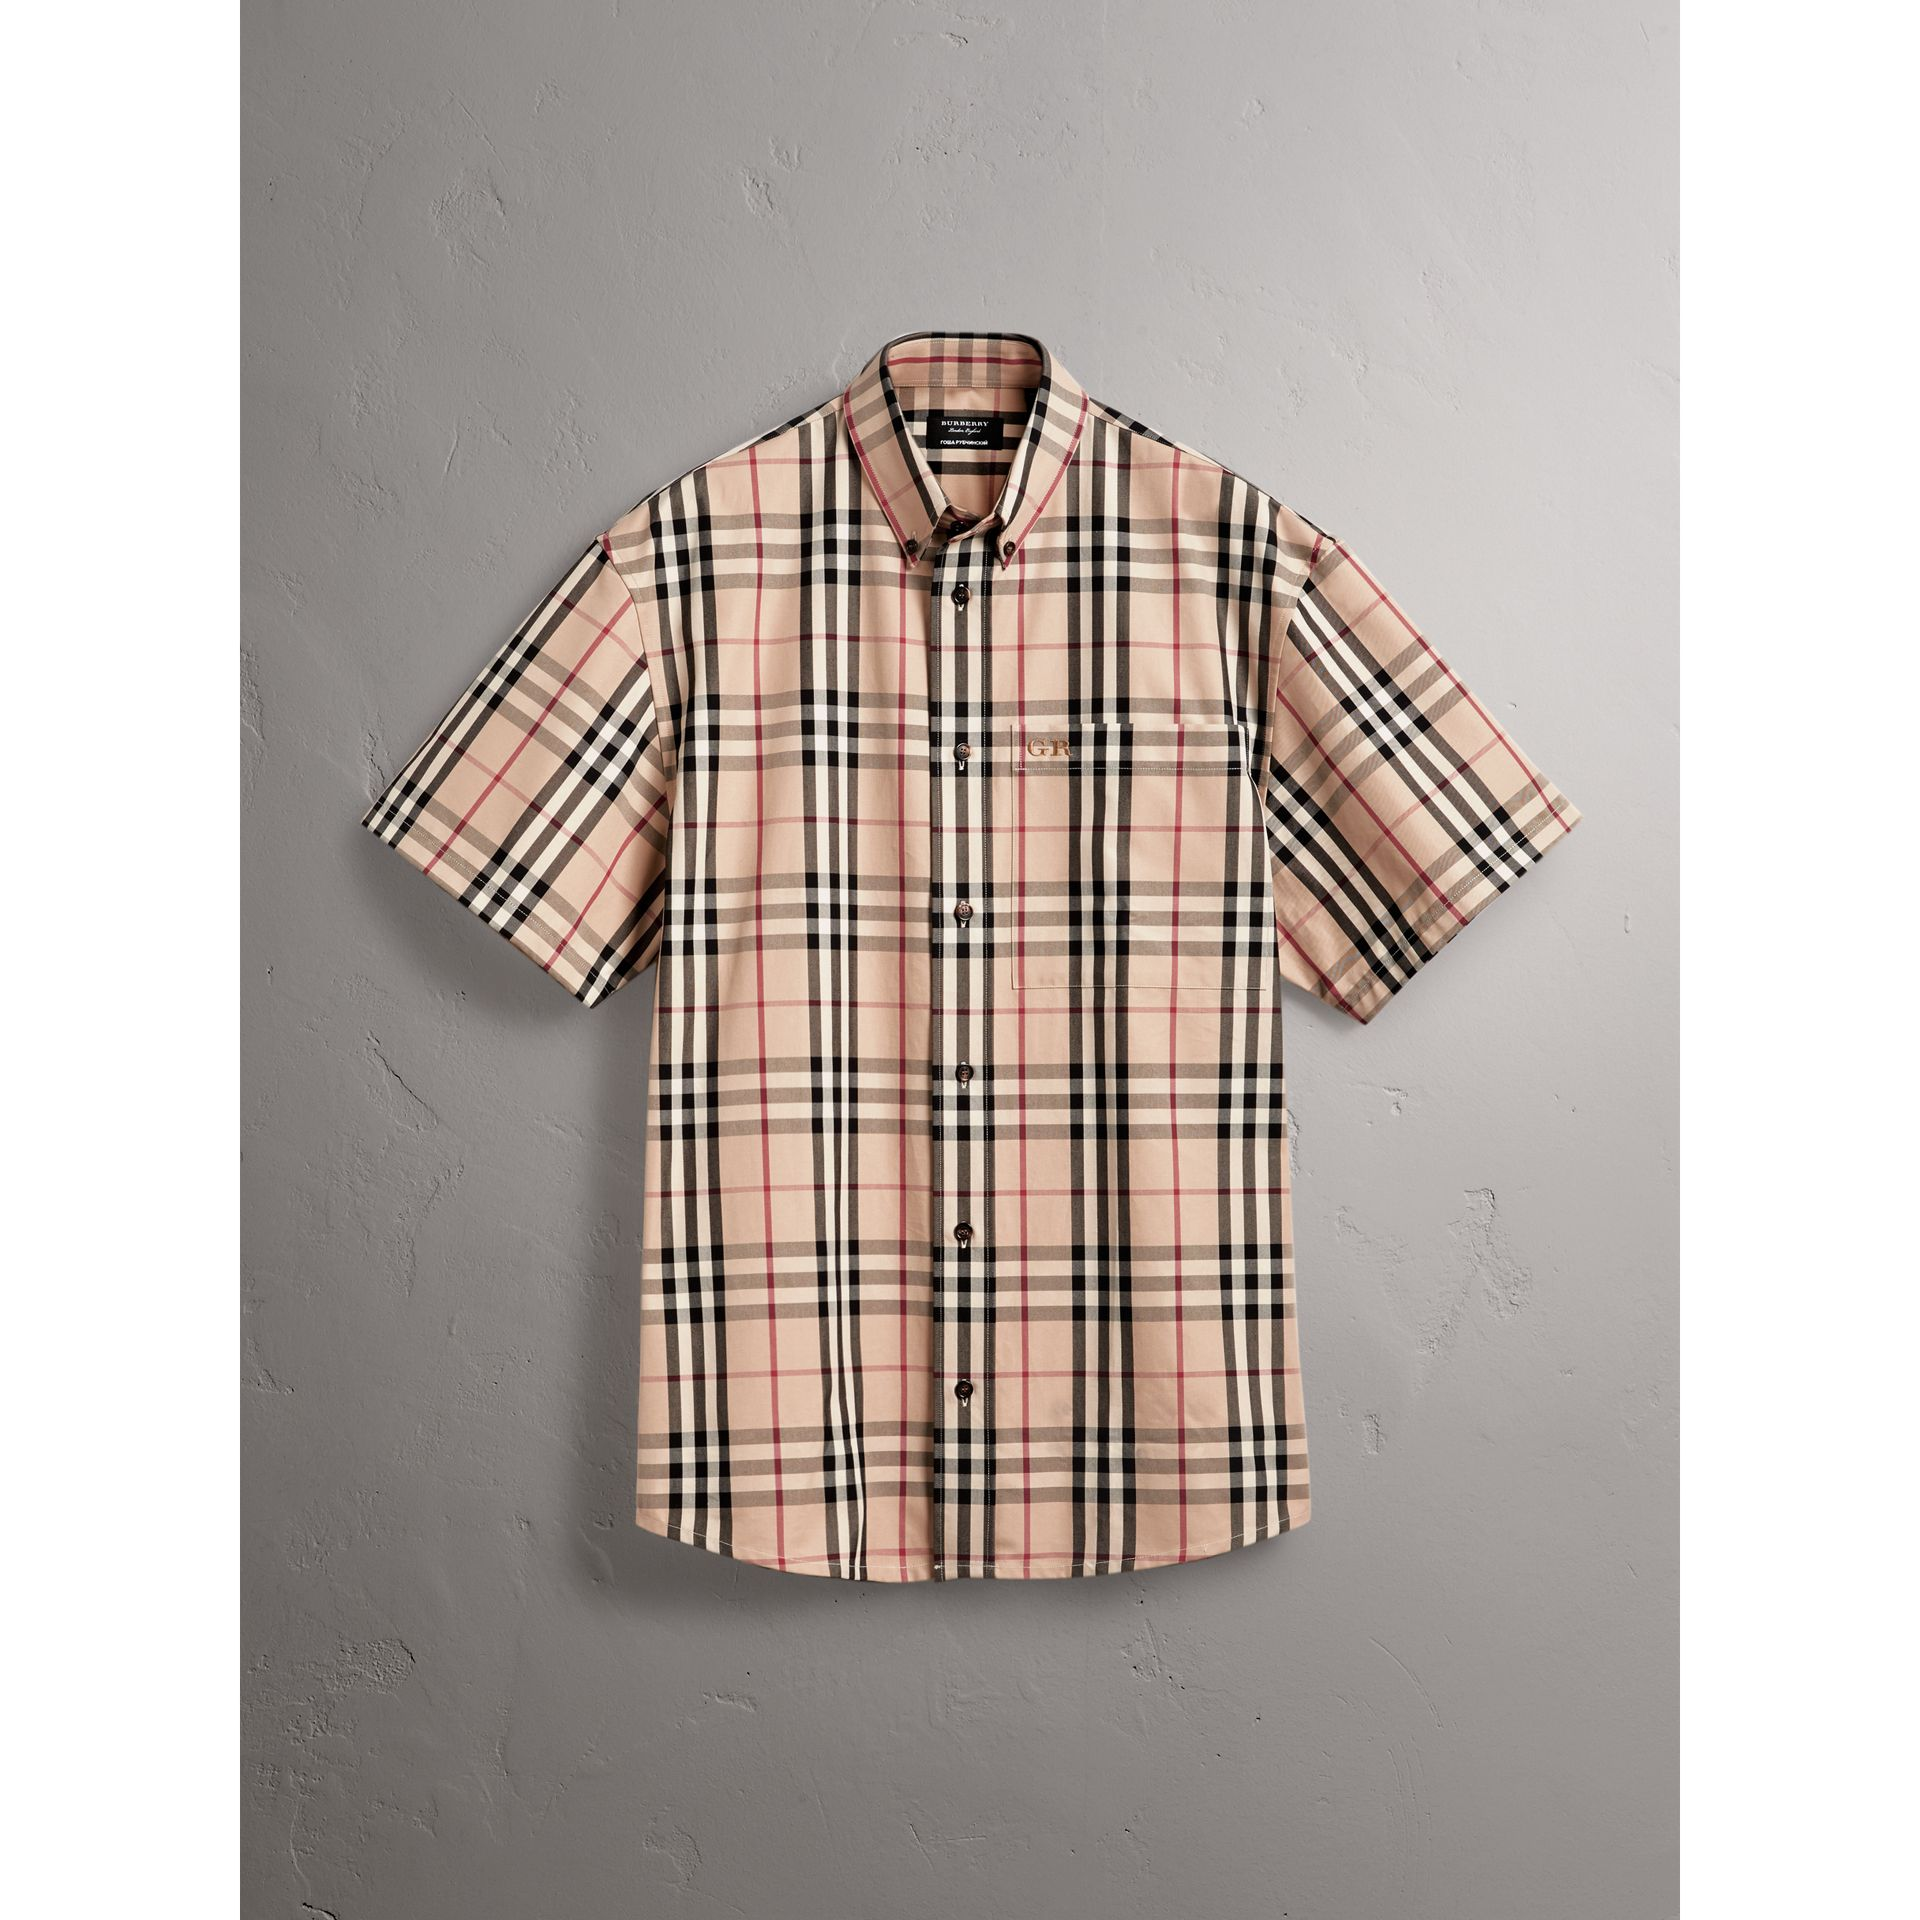 Gosha x Burberry Short-sleeve Check Shirt in Honey | Burberry Hong Kong - gallery image 4